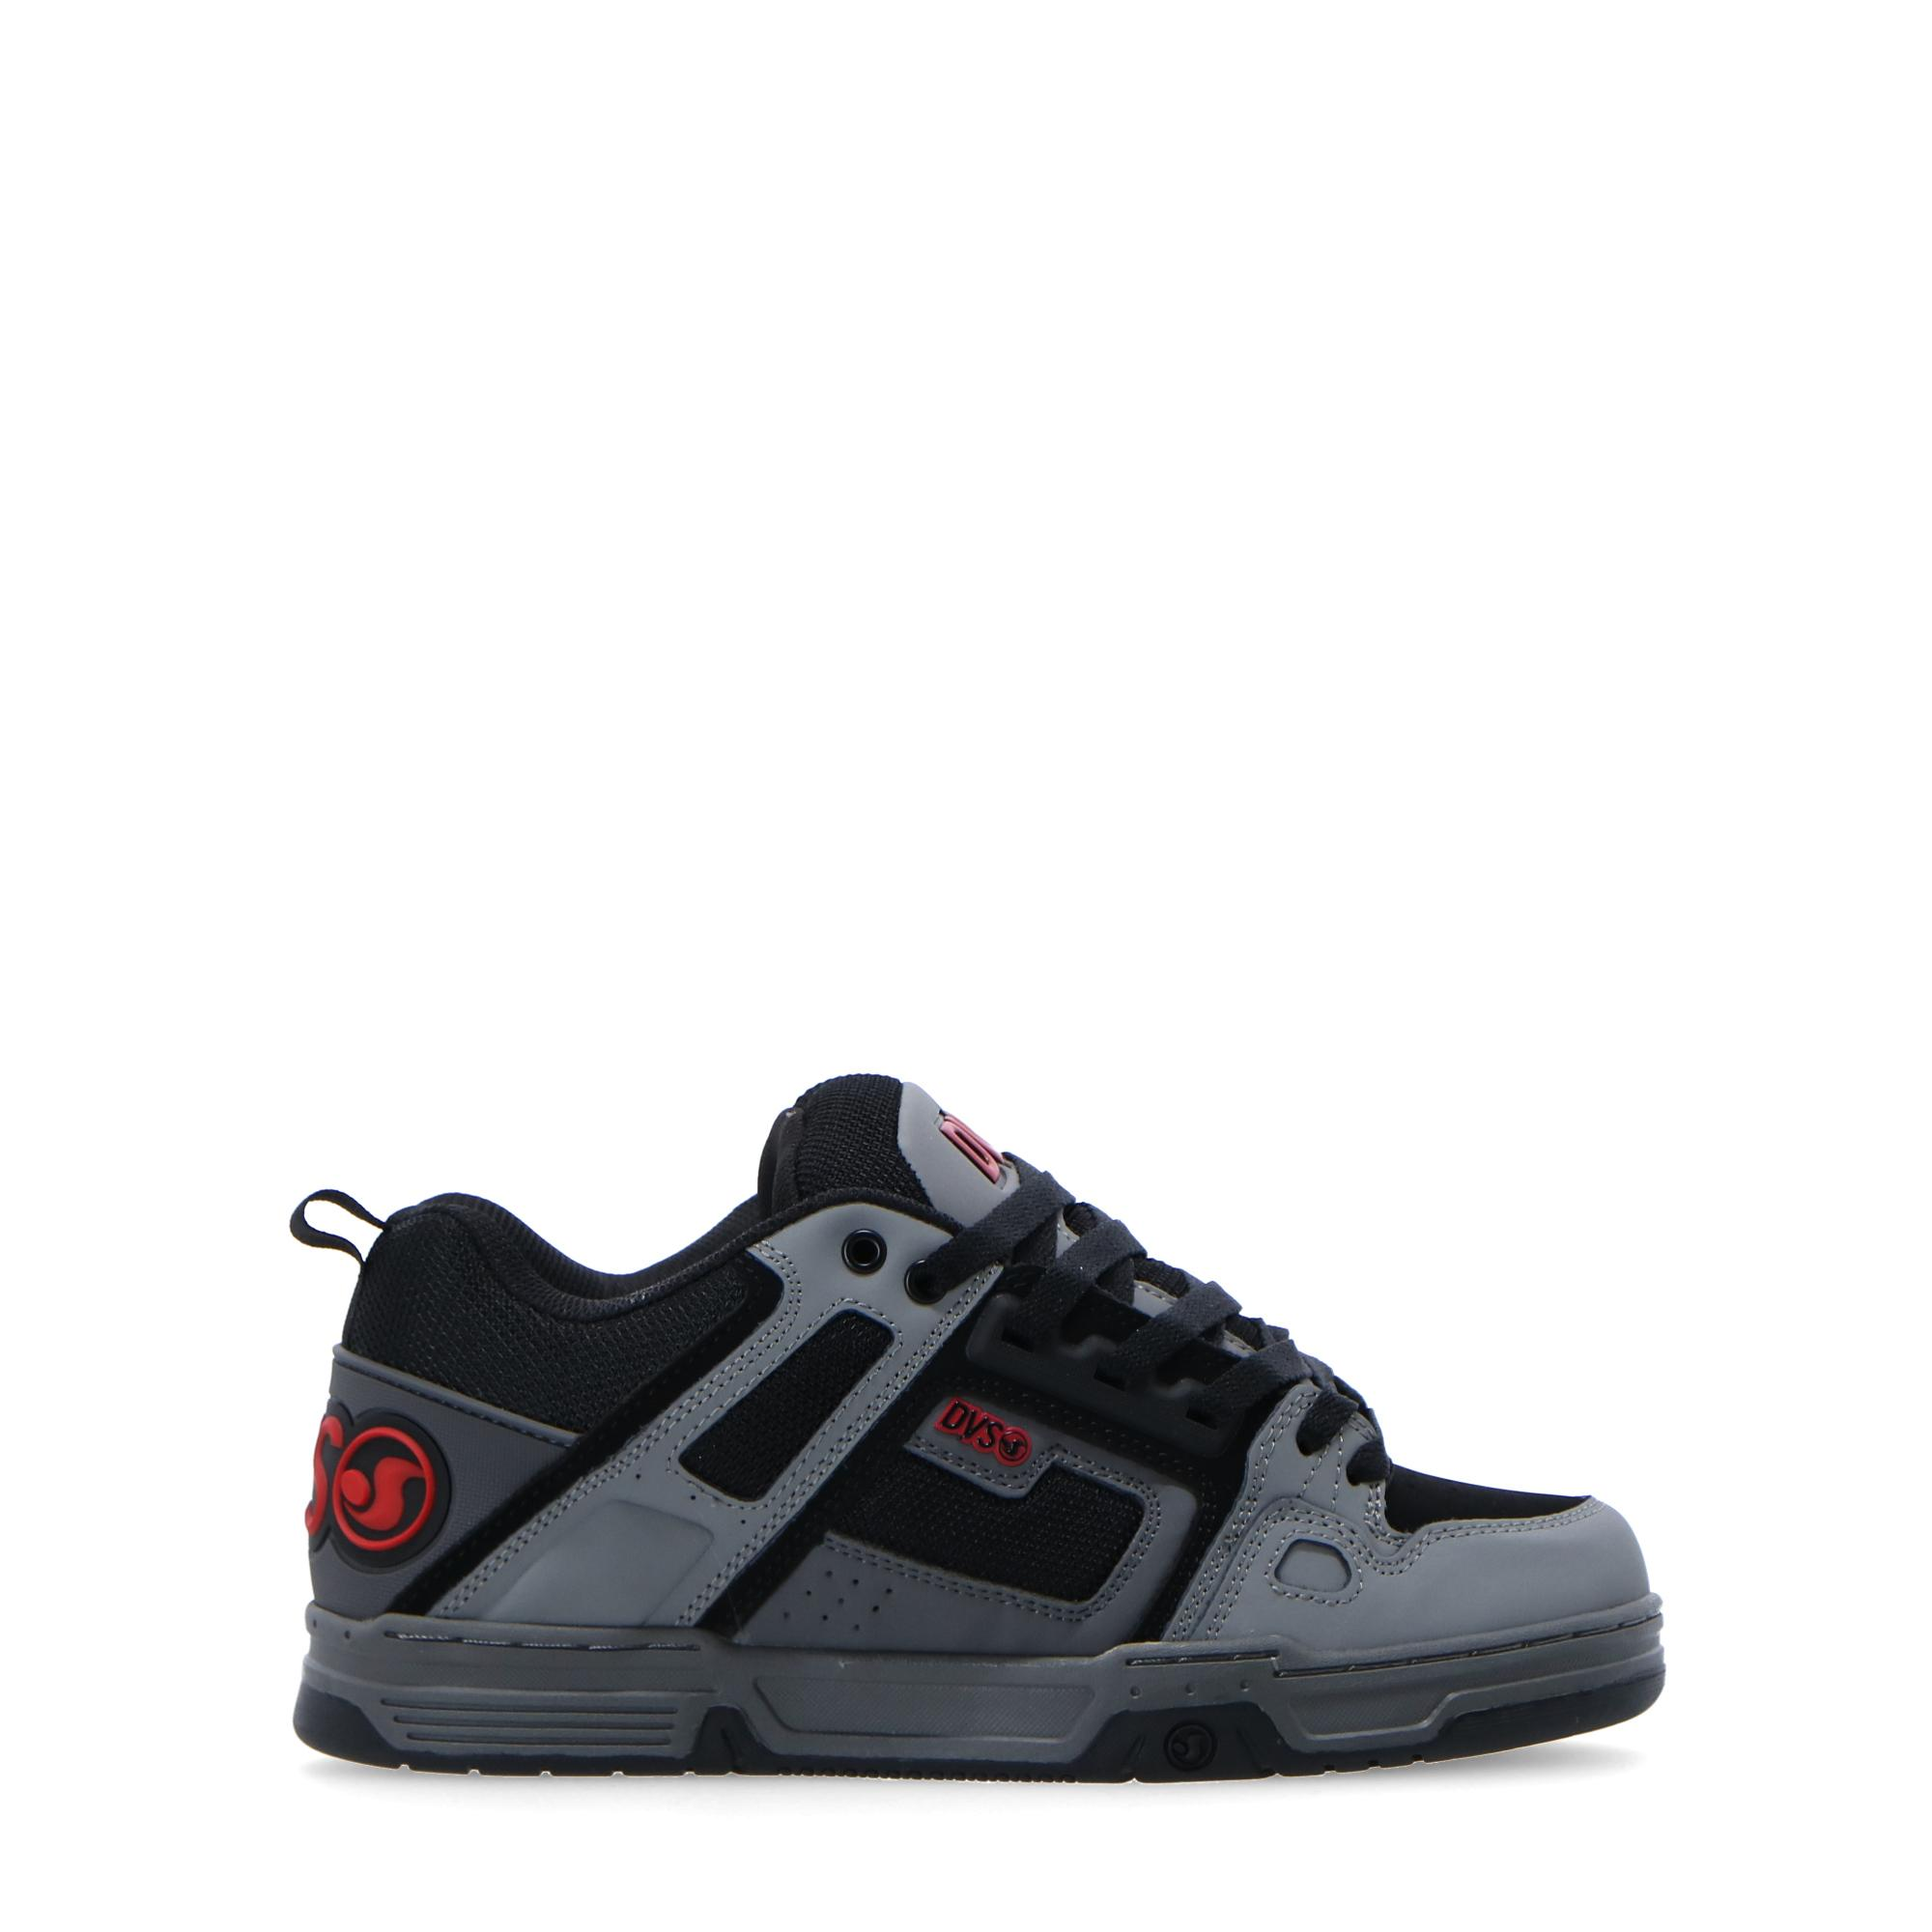 Dvs Comanche Grey charcoal black leather